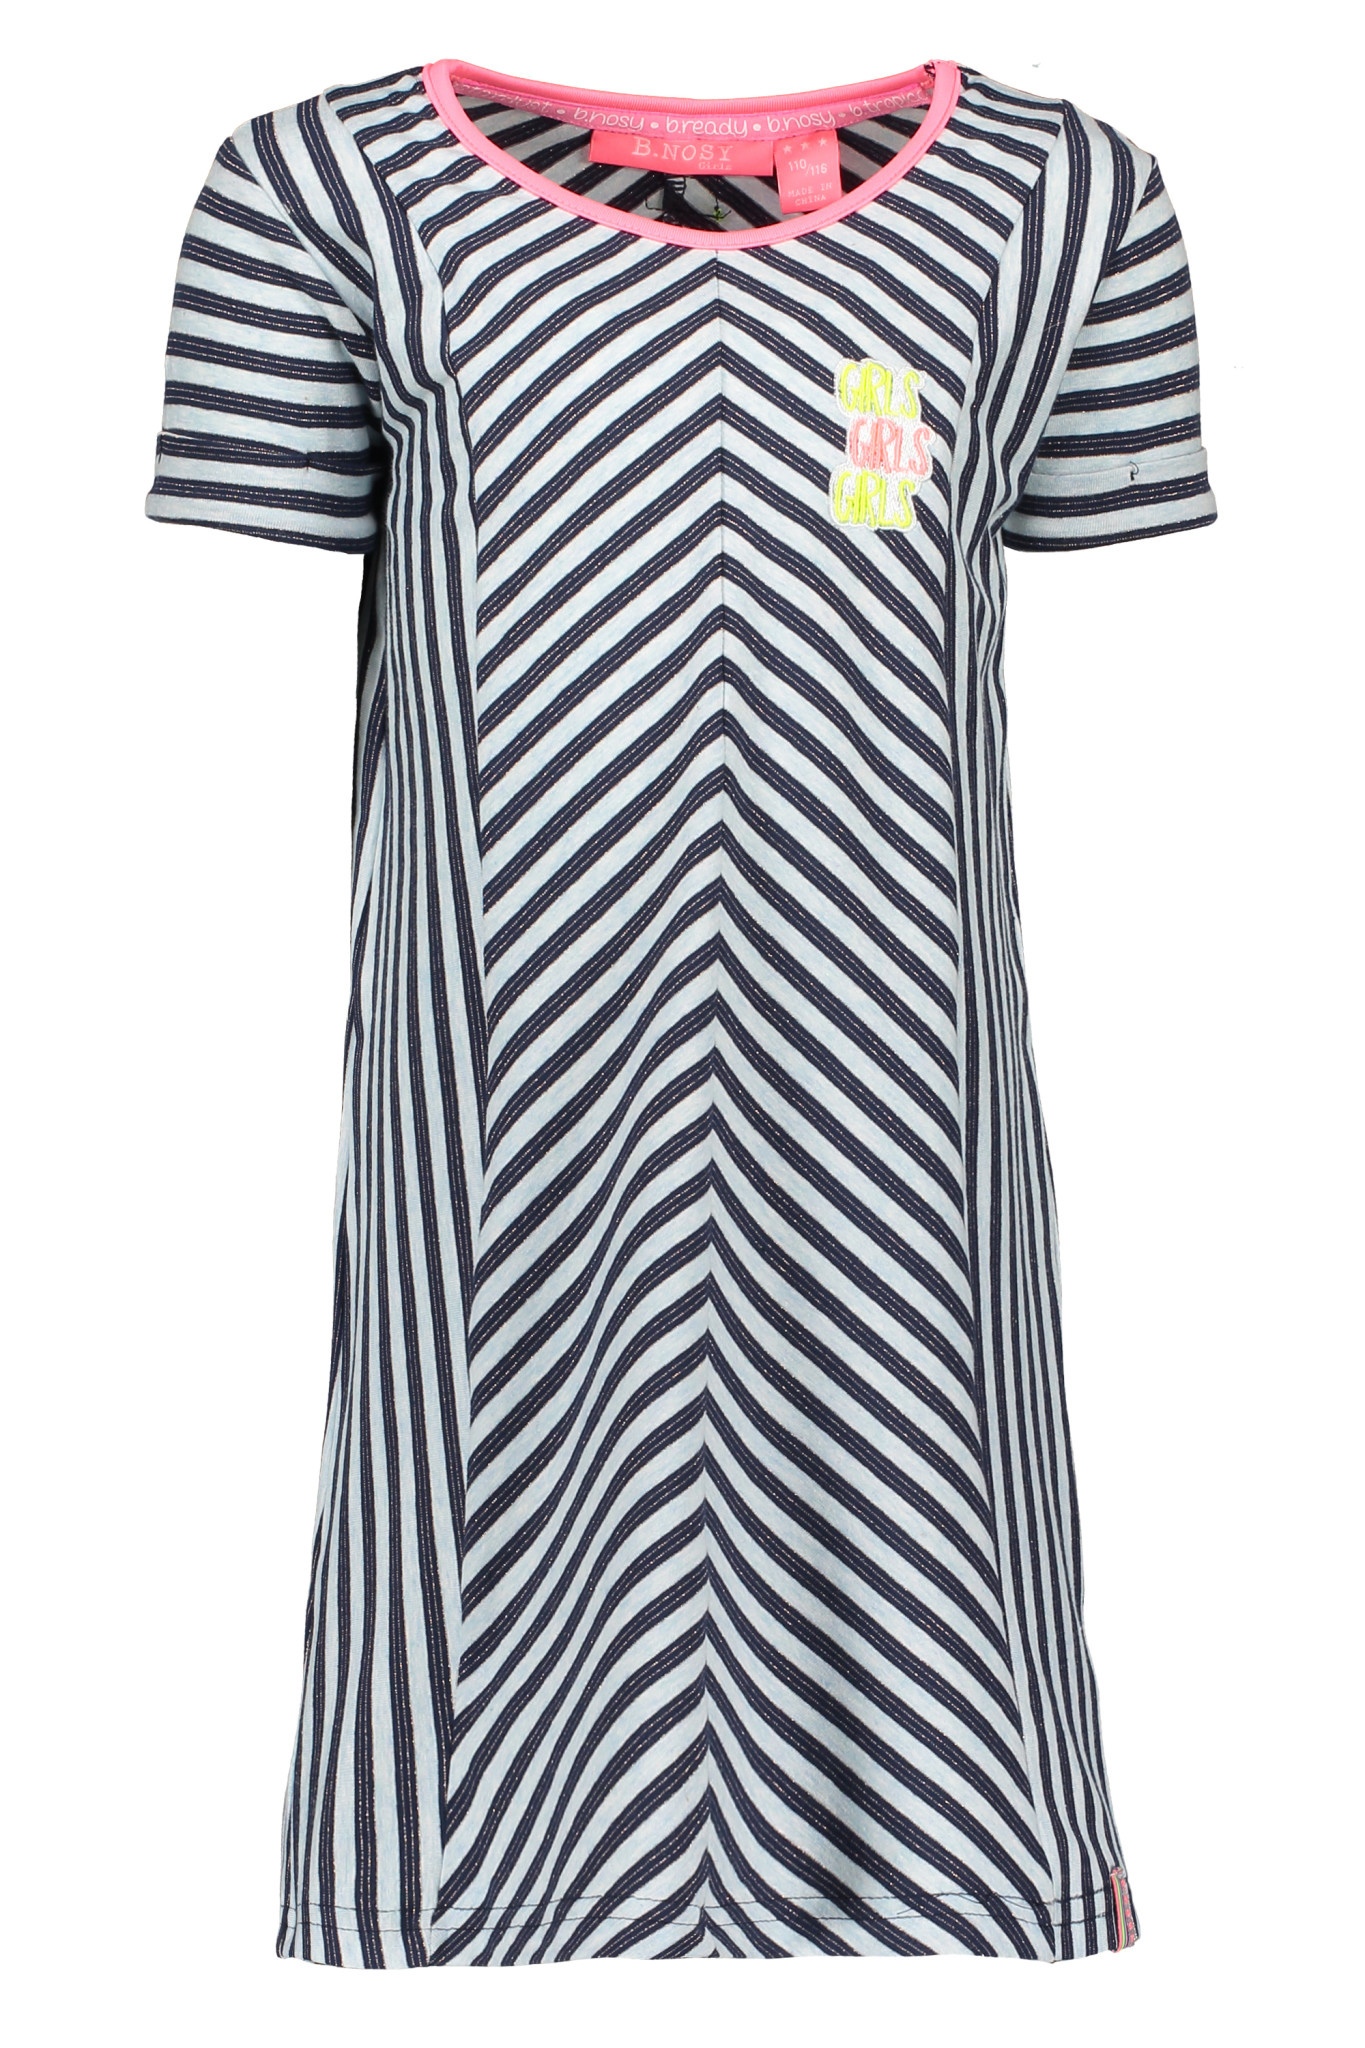 B.Nosy B.Nosy jurk jersey stripe rolled-up sleeves skydelight melee matching lurex